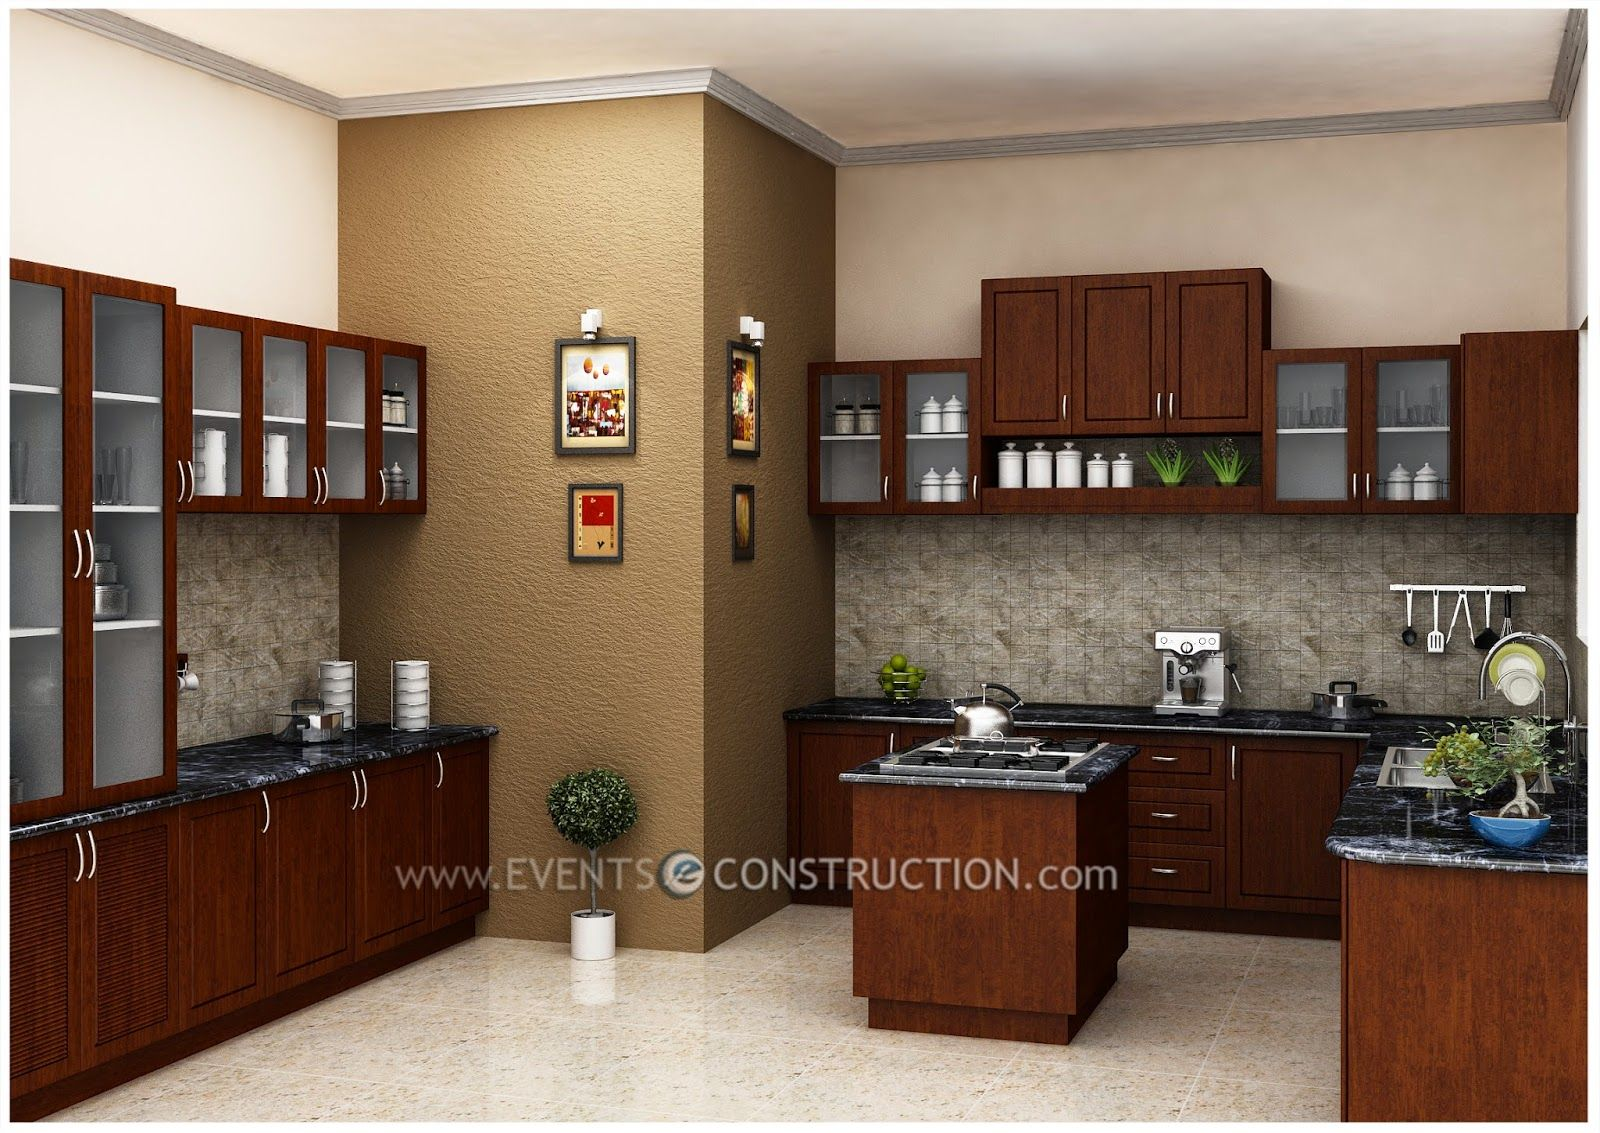 Exceptionnel Kerala Modern Kitchen Joy Studio Design Gallery Design Kitchen Cabinet  Designs Photos Kerala Home Design Floor Kerala Modern Kitchen Joy Studio  Design ...